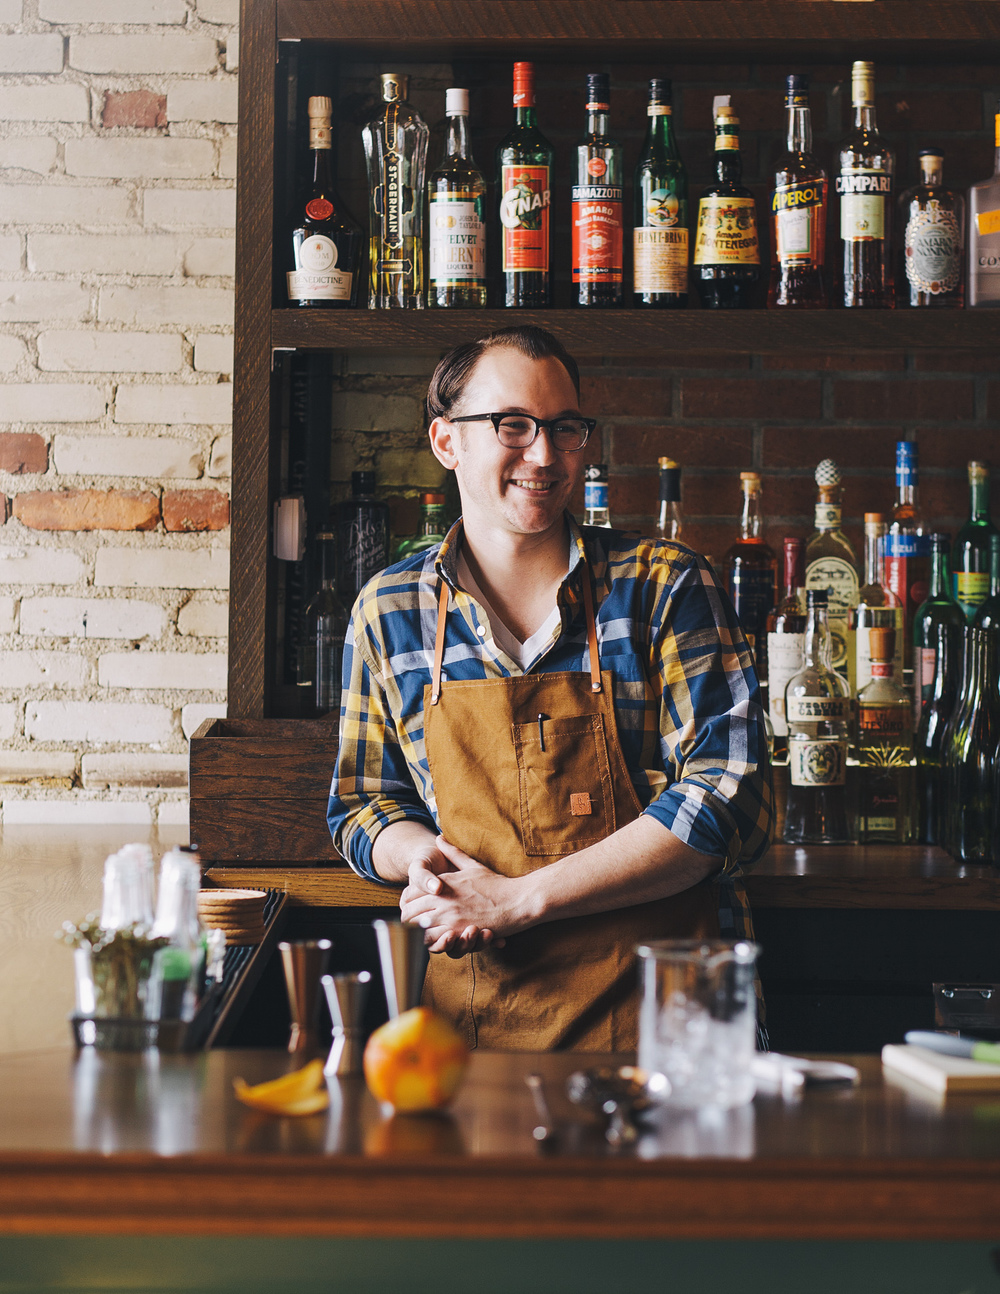 Bartender Photographed by Adam DeTour